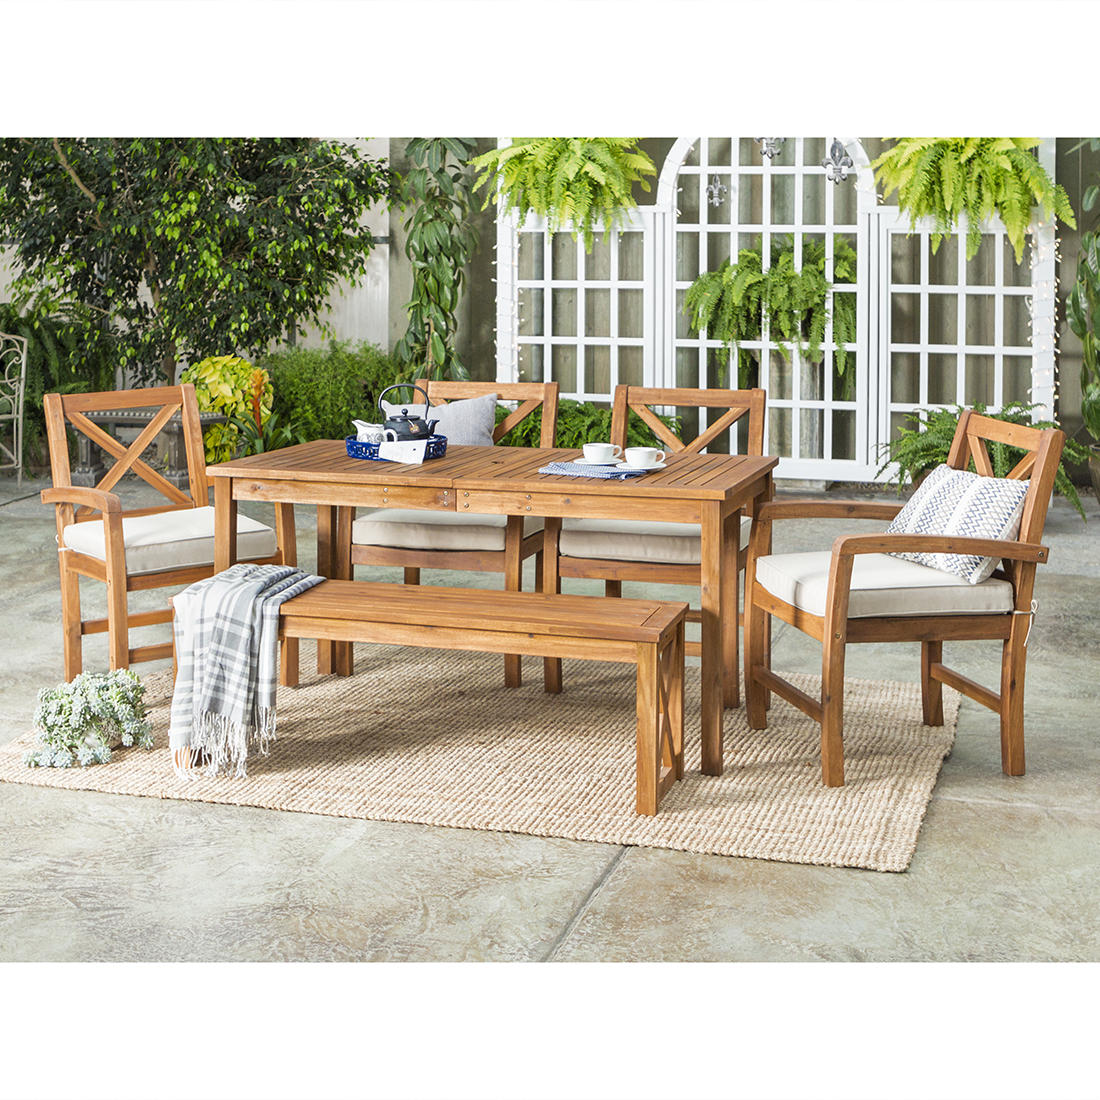 W. Trends 6 Pc. Acacia Wood Outdoor Dining Set   Brown